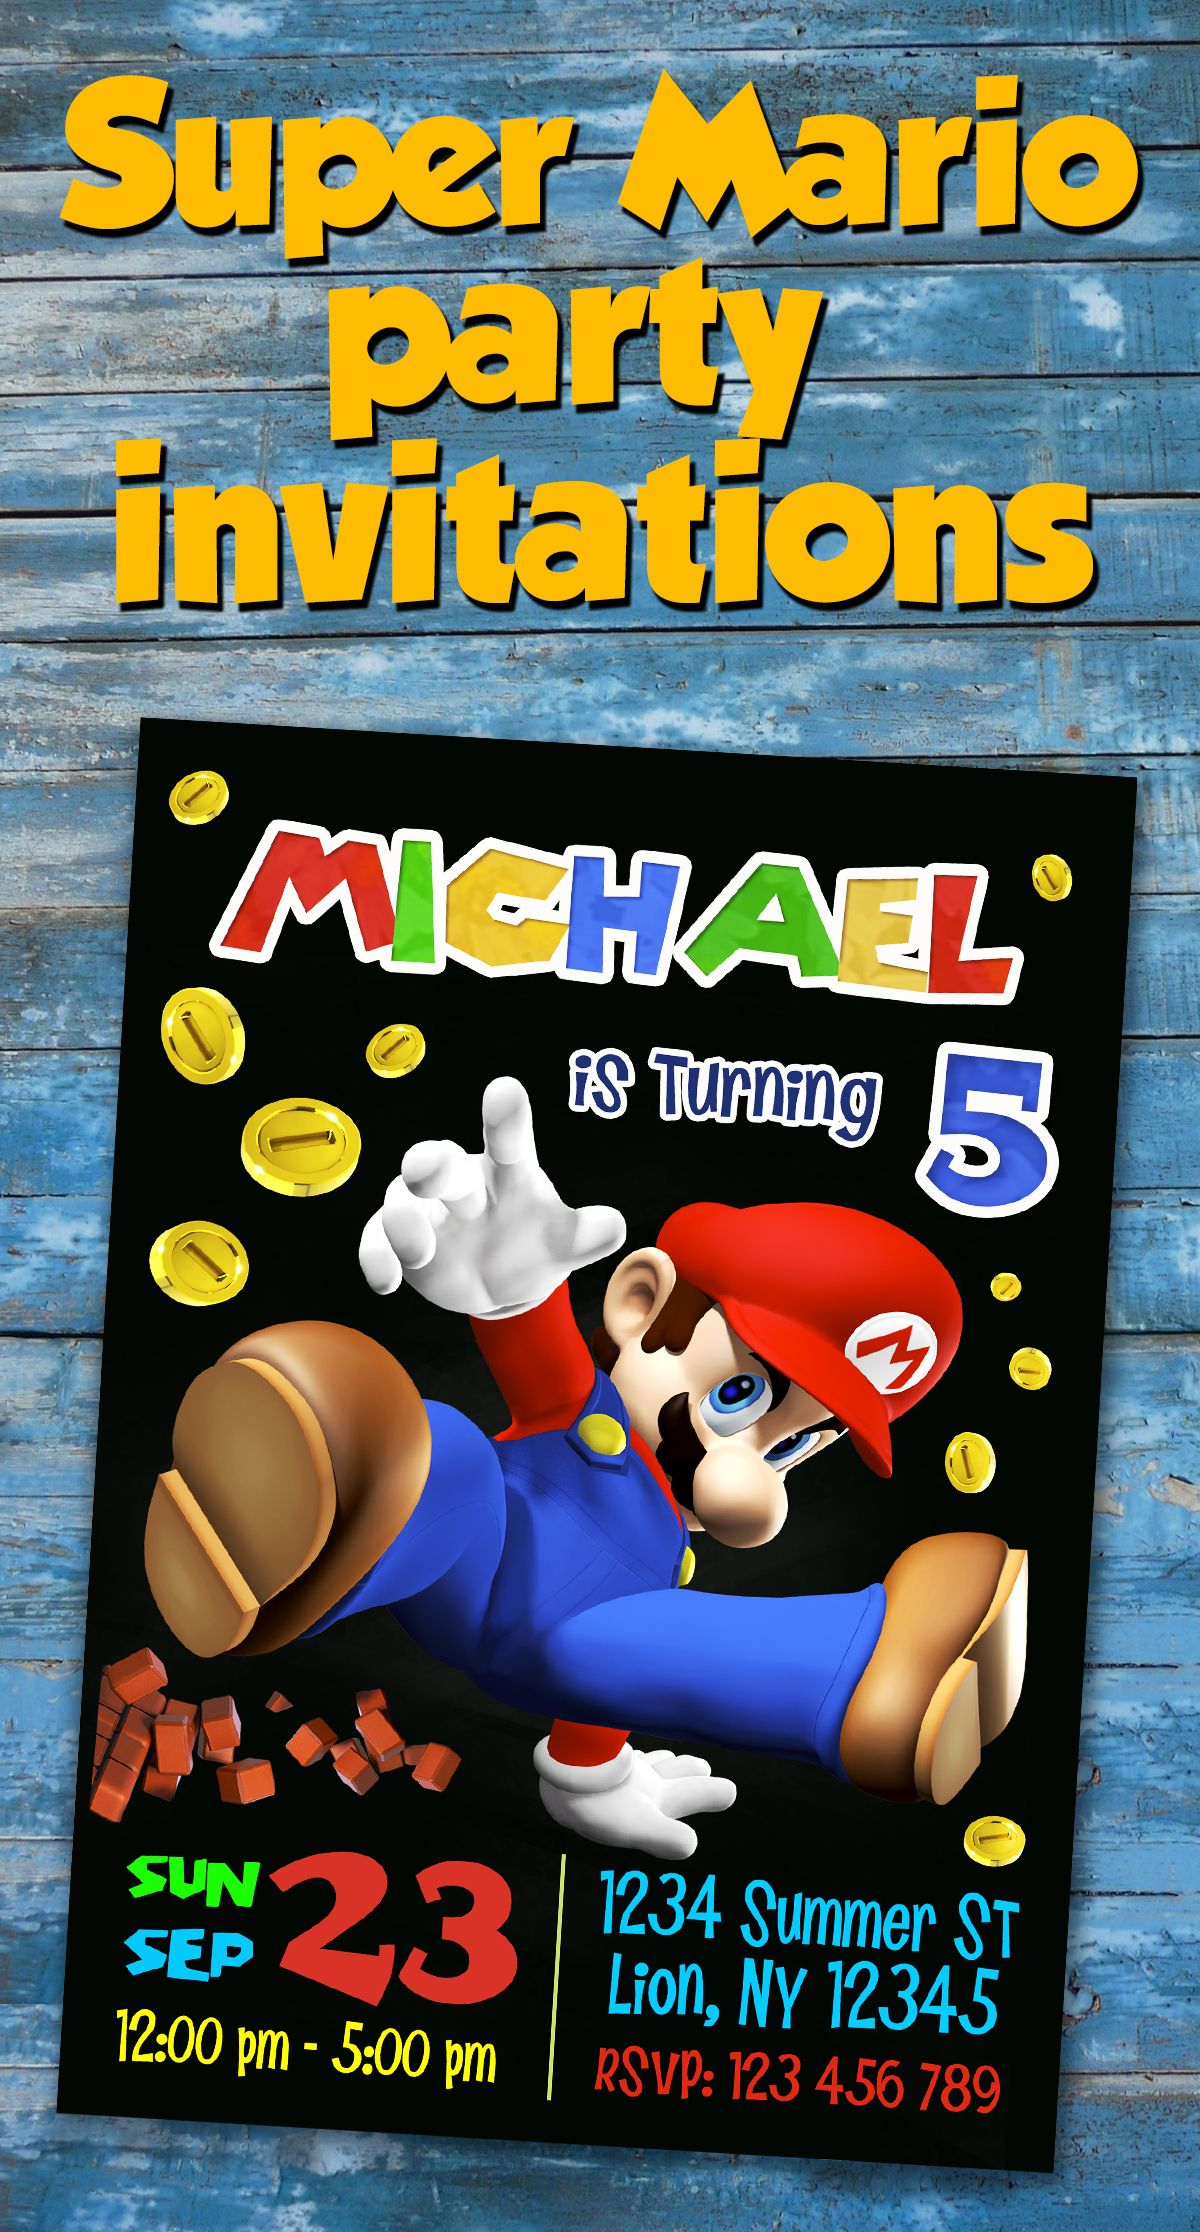 Super mario birthday party invitation super mario printables super mario birthday party invitation super mario printables super mario invitation super mario monicamarmolfo Gallery